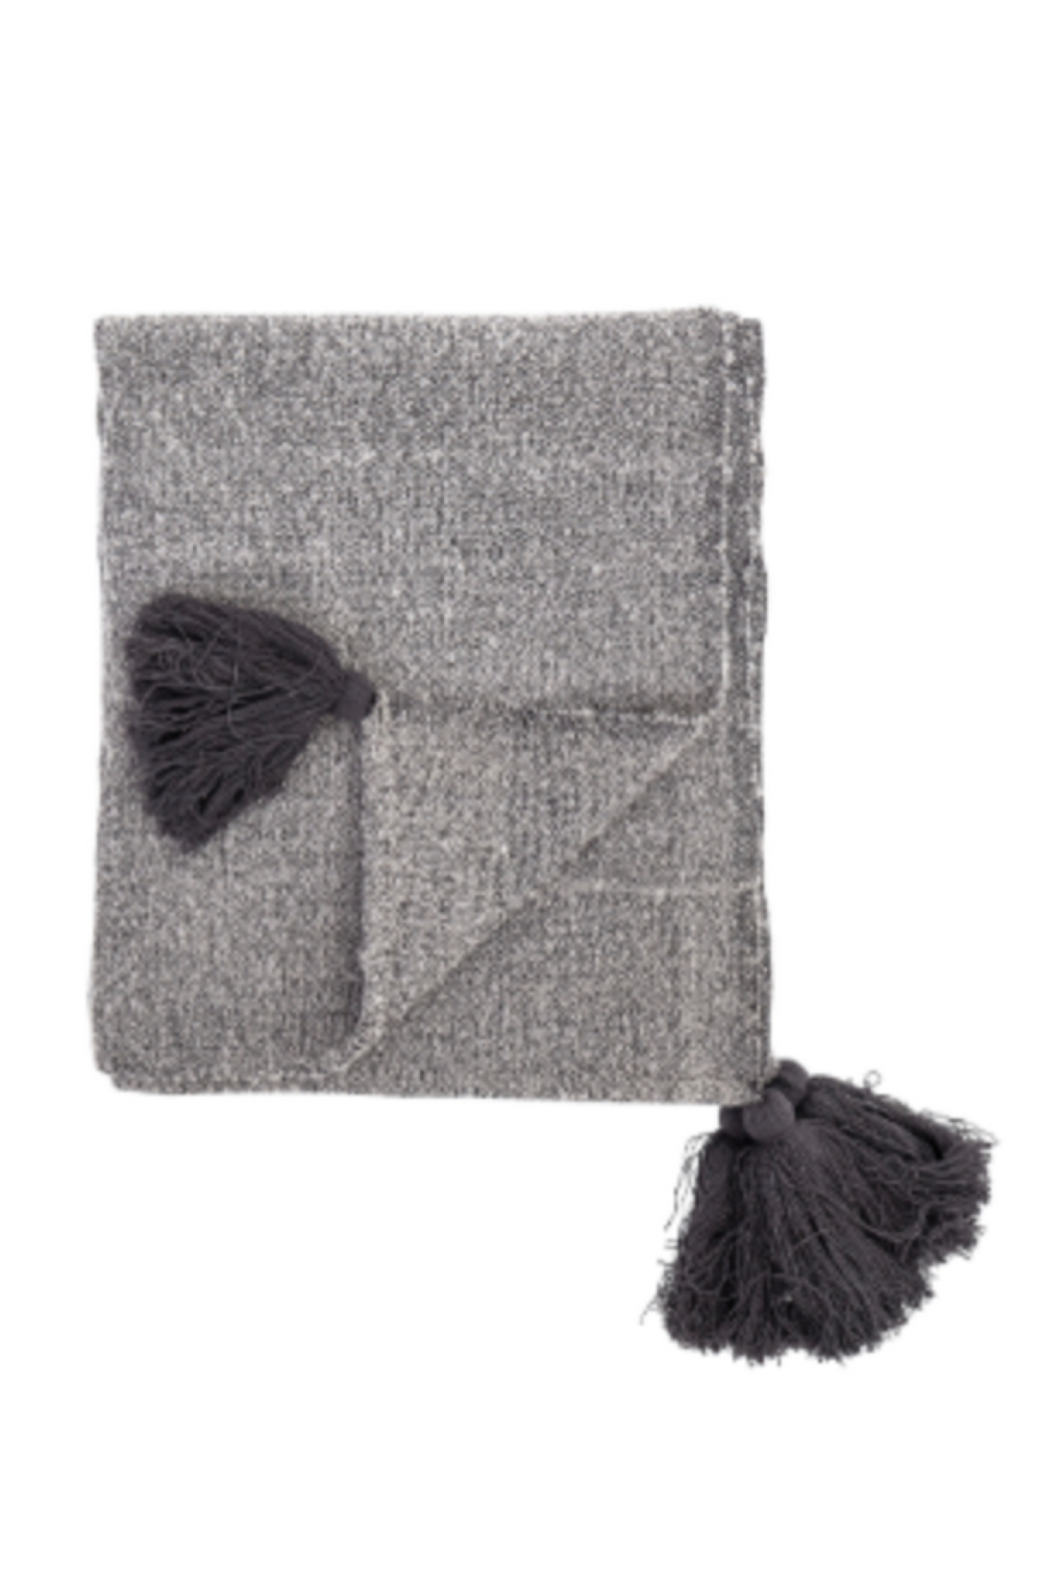 Bloomingville Woven Grey Throw Blanket With Tassels - Main Image